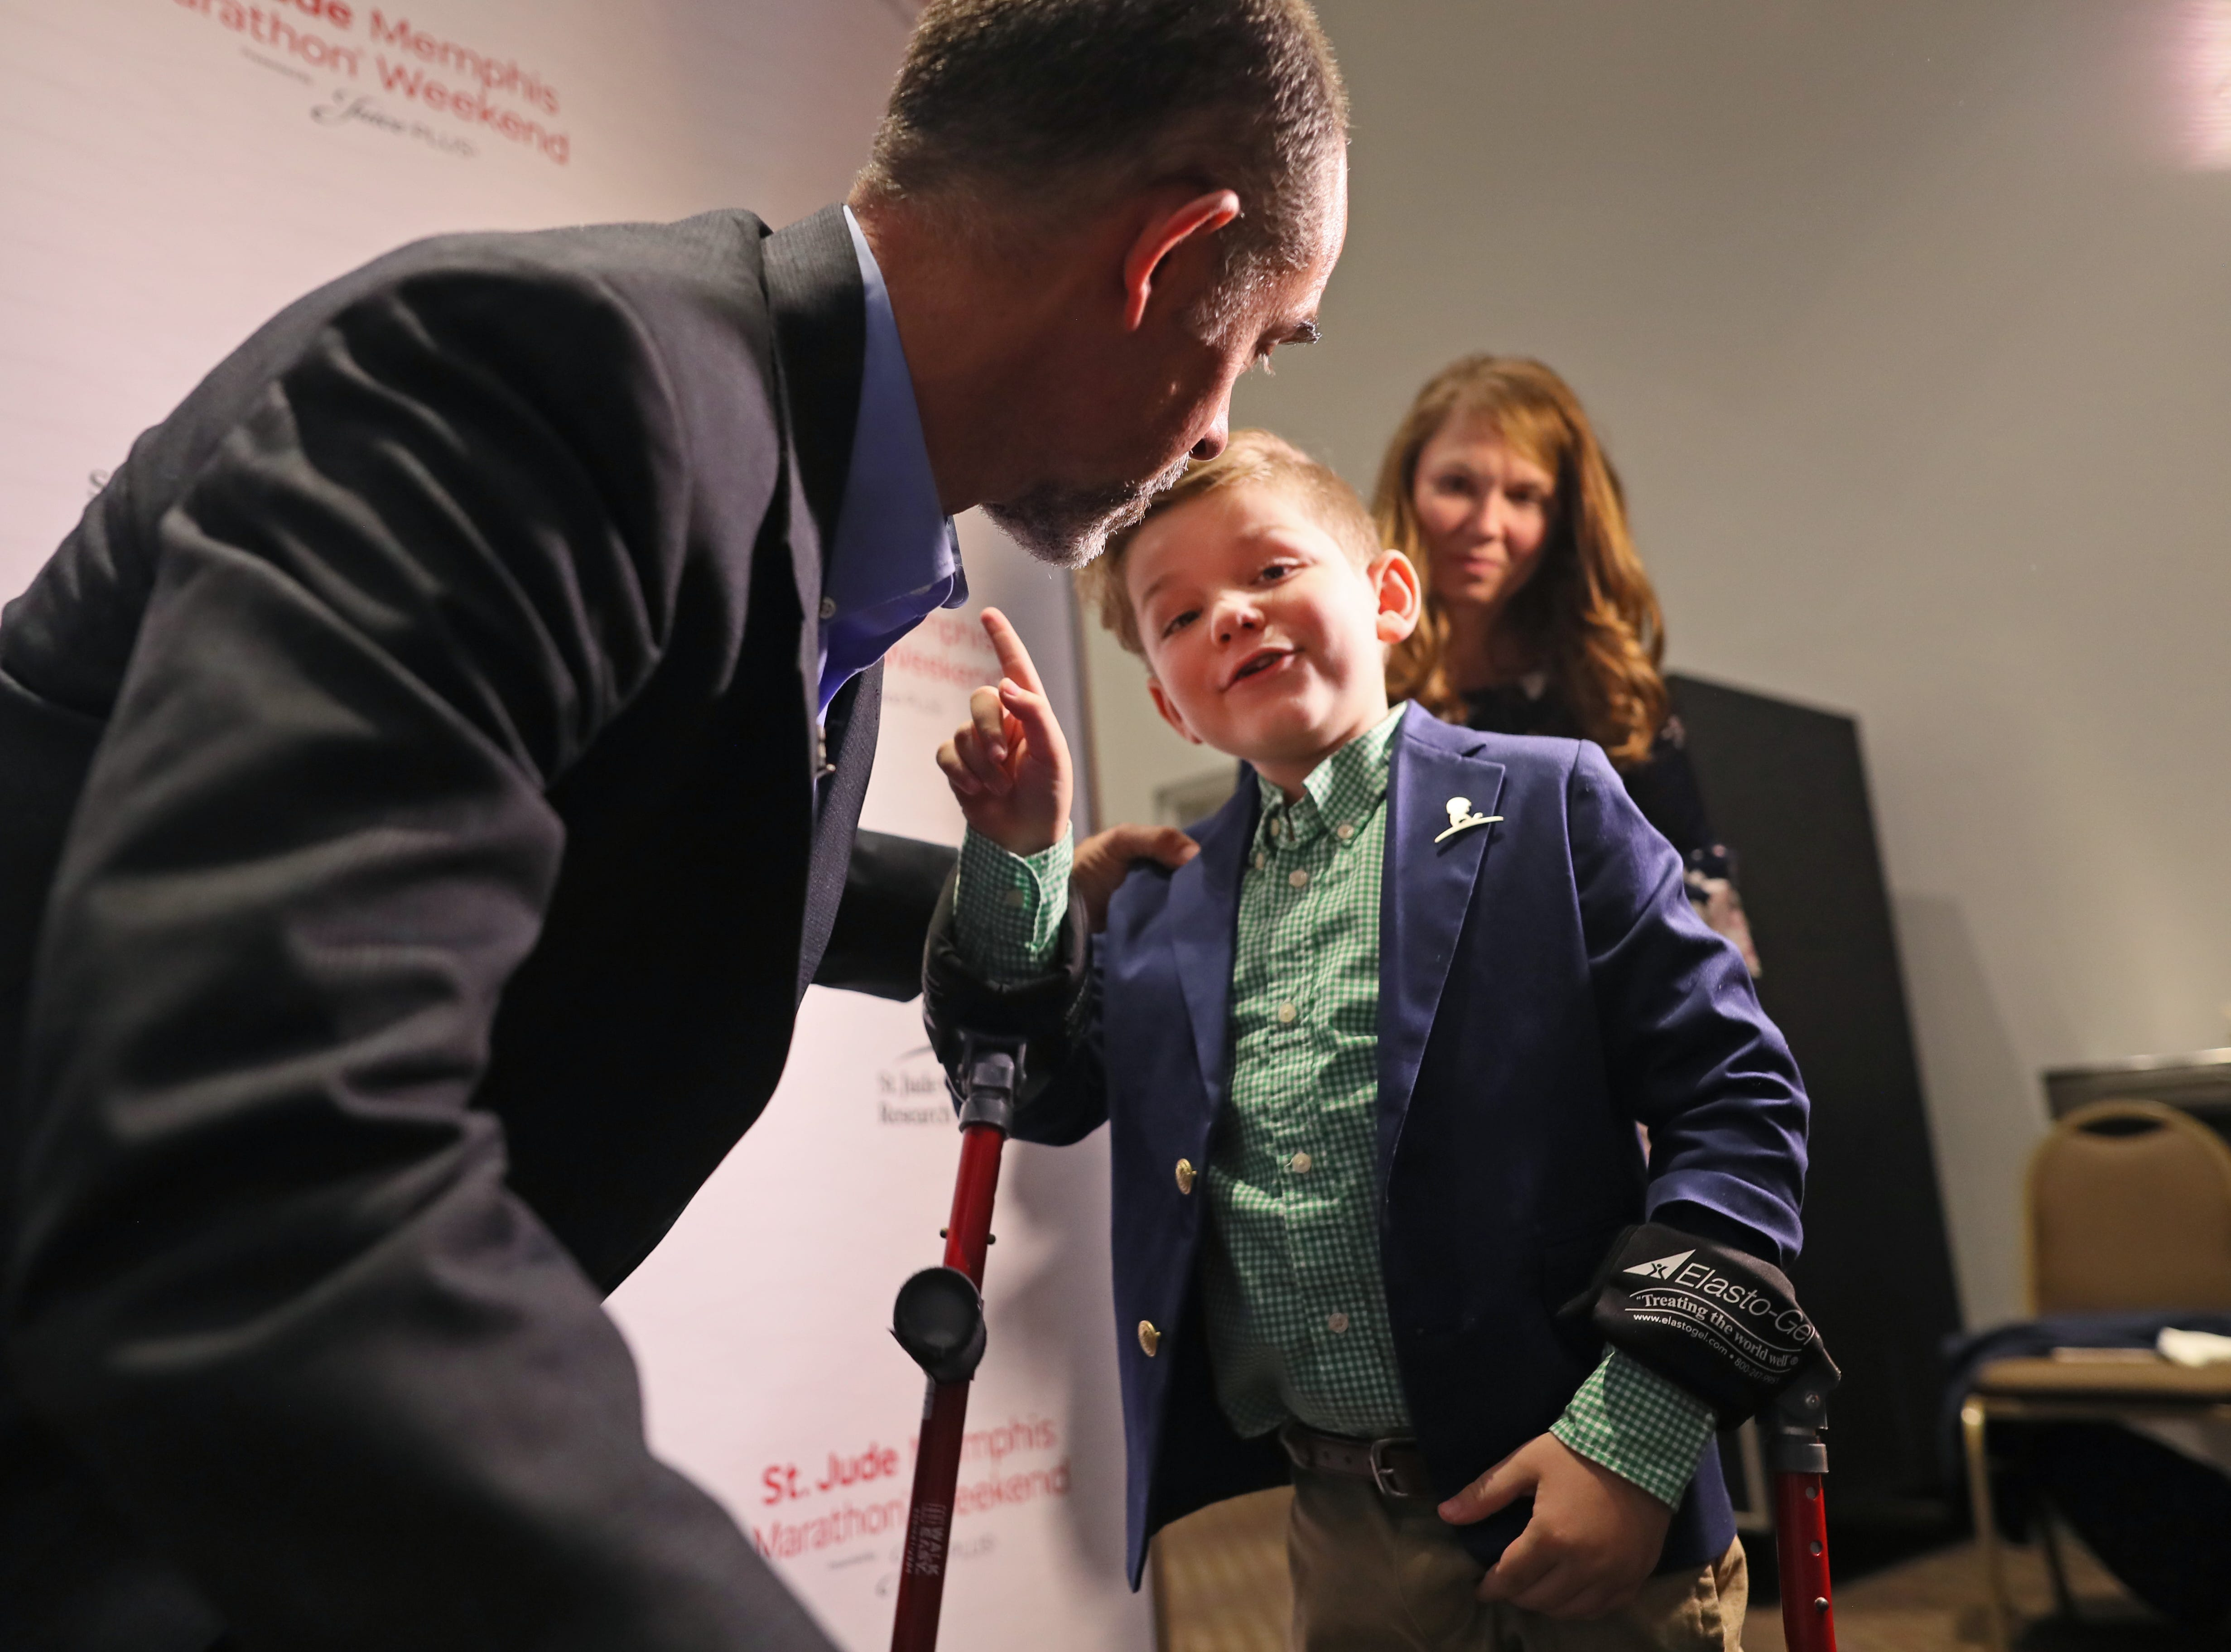 "Kael Hill, 6, tells Kent Stoneking ""You're my hero,"" as the two share the sentiment with each other during a press conference at the Cook Convention Center on Thursday, Nov. 29, 2018. Stoneking, who lost his leg in a motorcycle accident, has been an ambassador for St. Jude, running in their annual marathon to help children like Kael, who was a patient at the children's hospital."